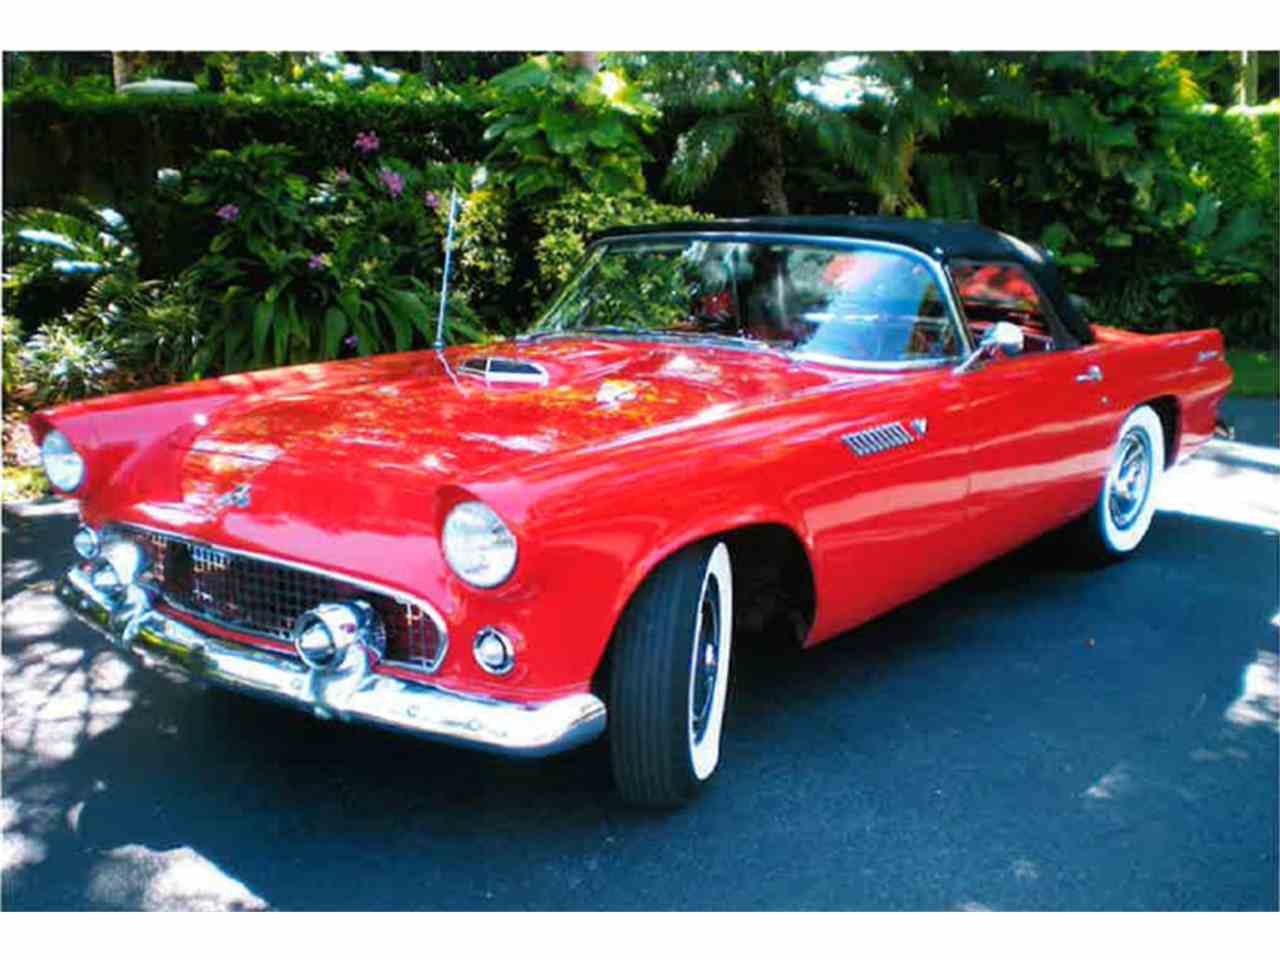 Large Picture of Classic 1955 Ford Thunderbird located in Florida - $41,000.00 Offered by a Private Seller - LMC8